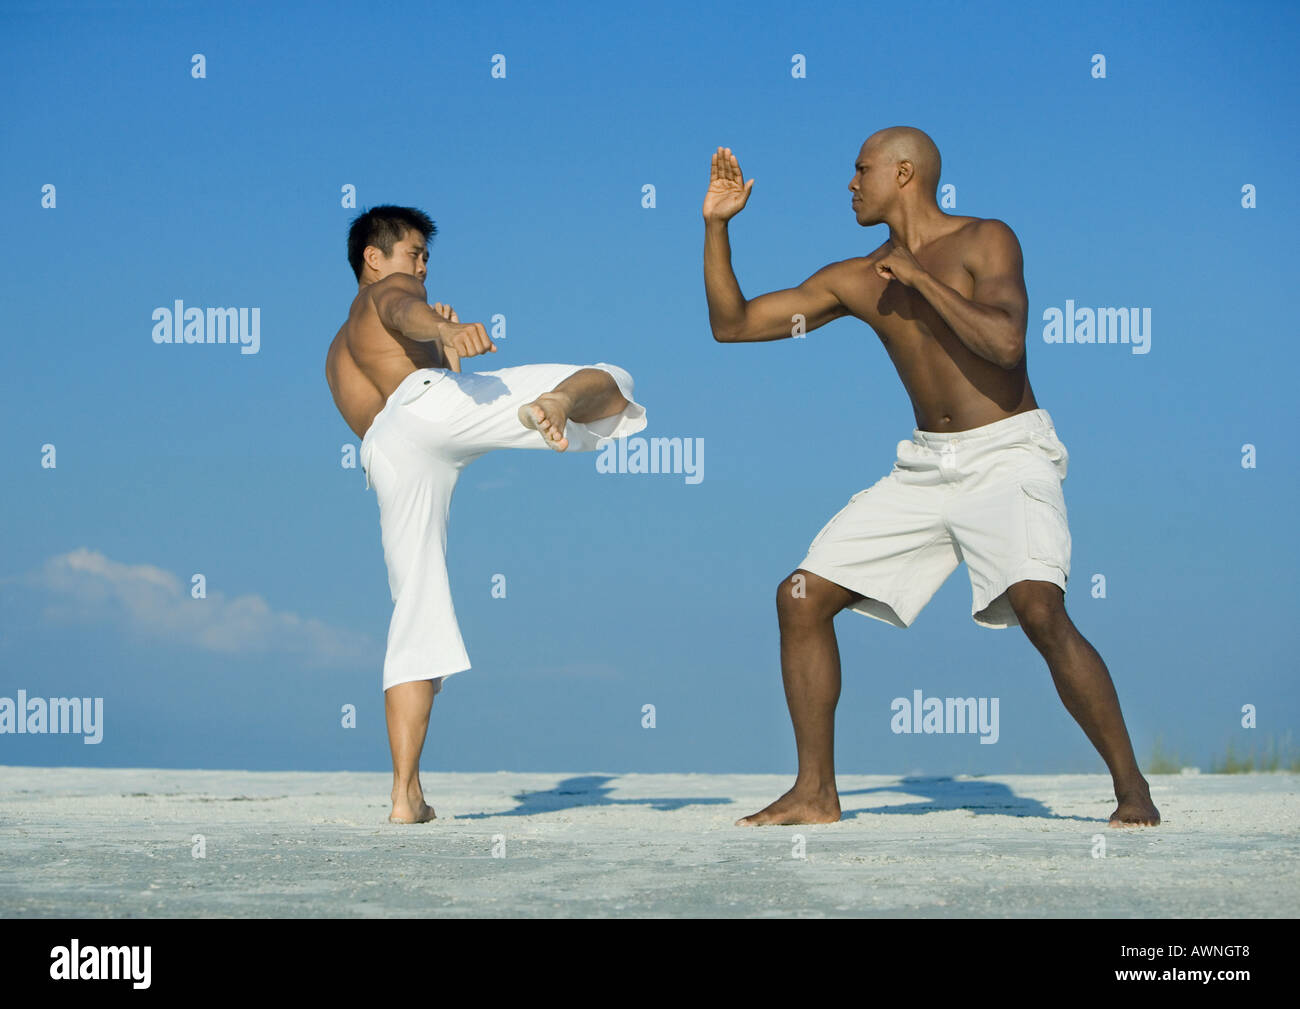 Two men practicing martial arts on beach - Stock Image